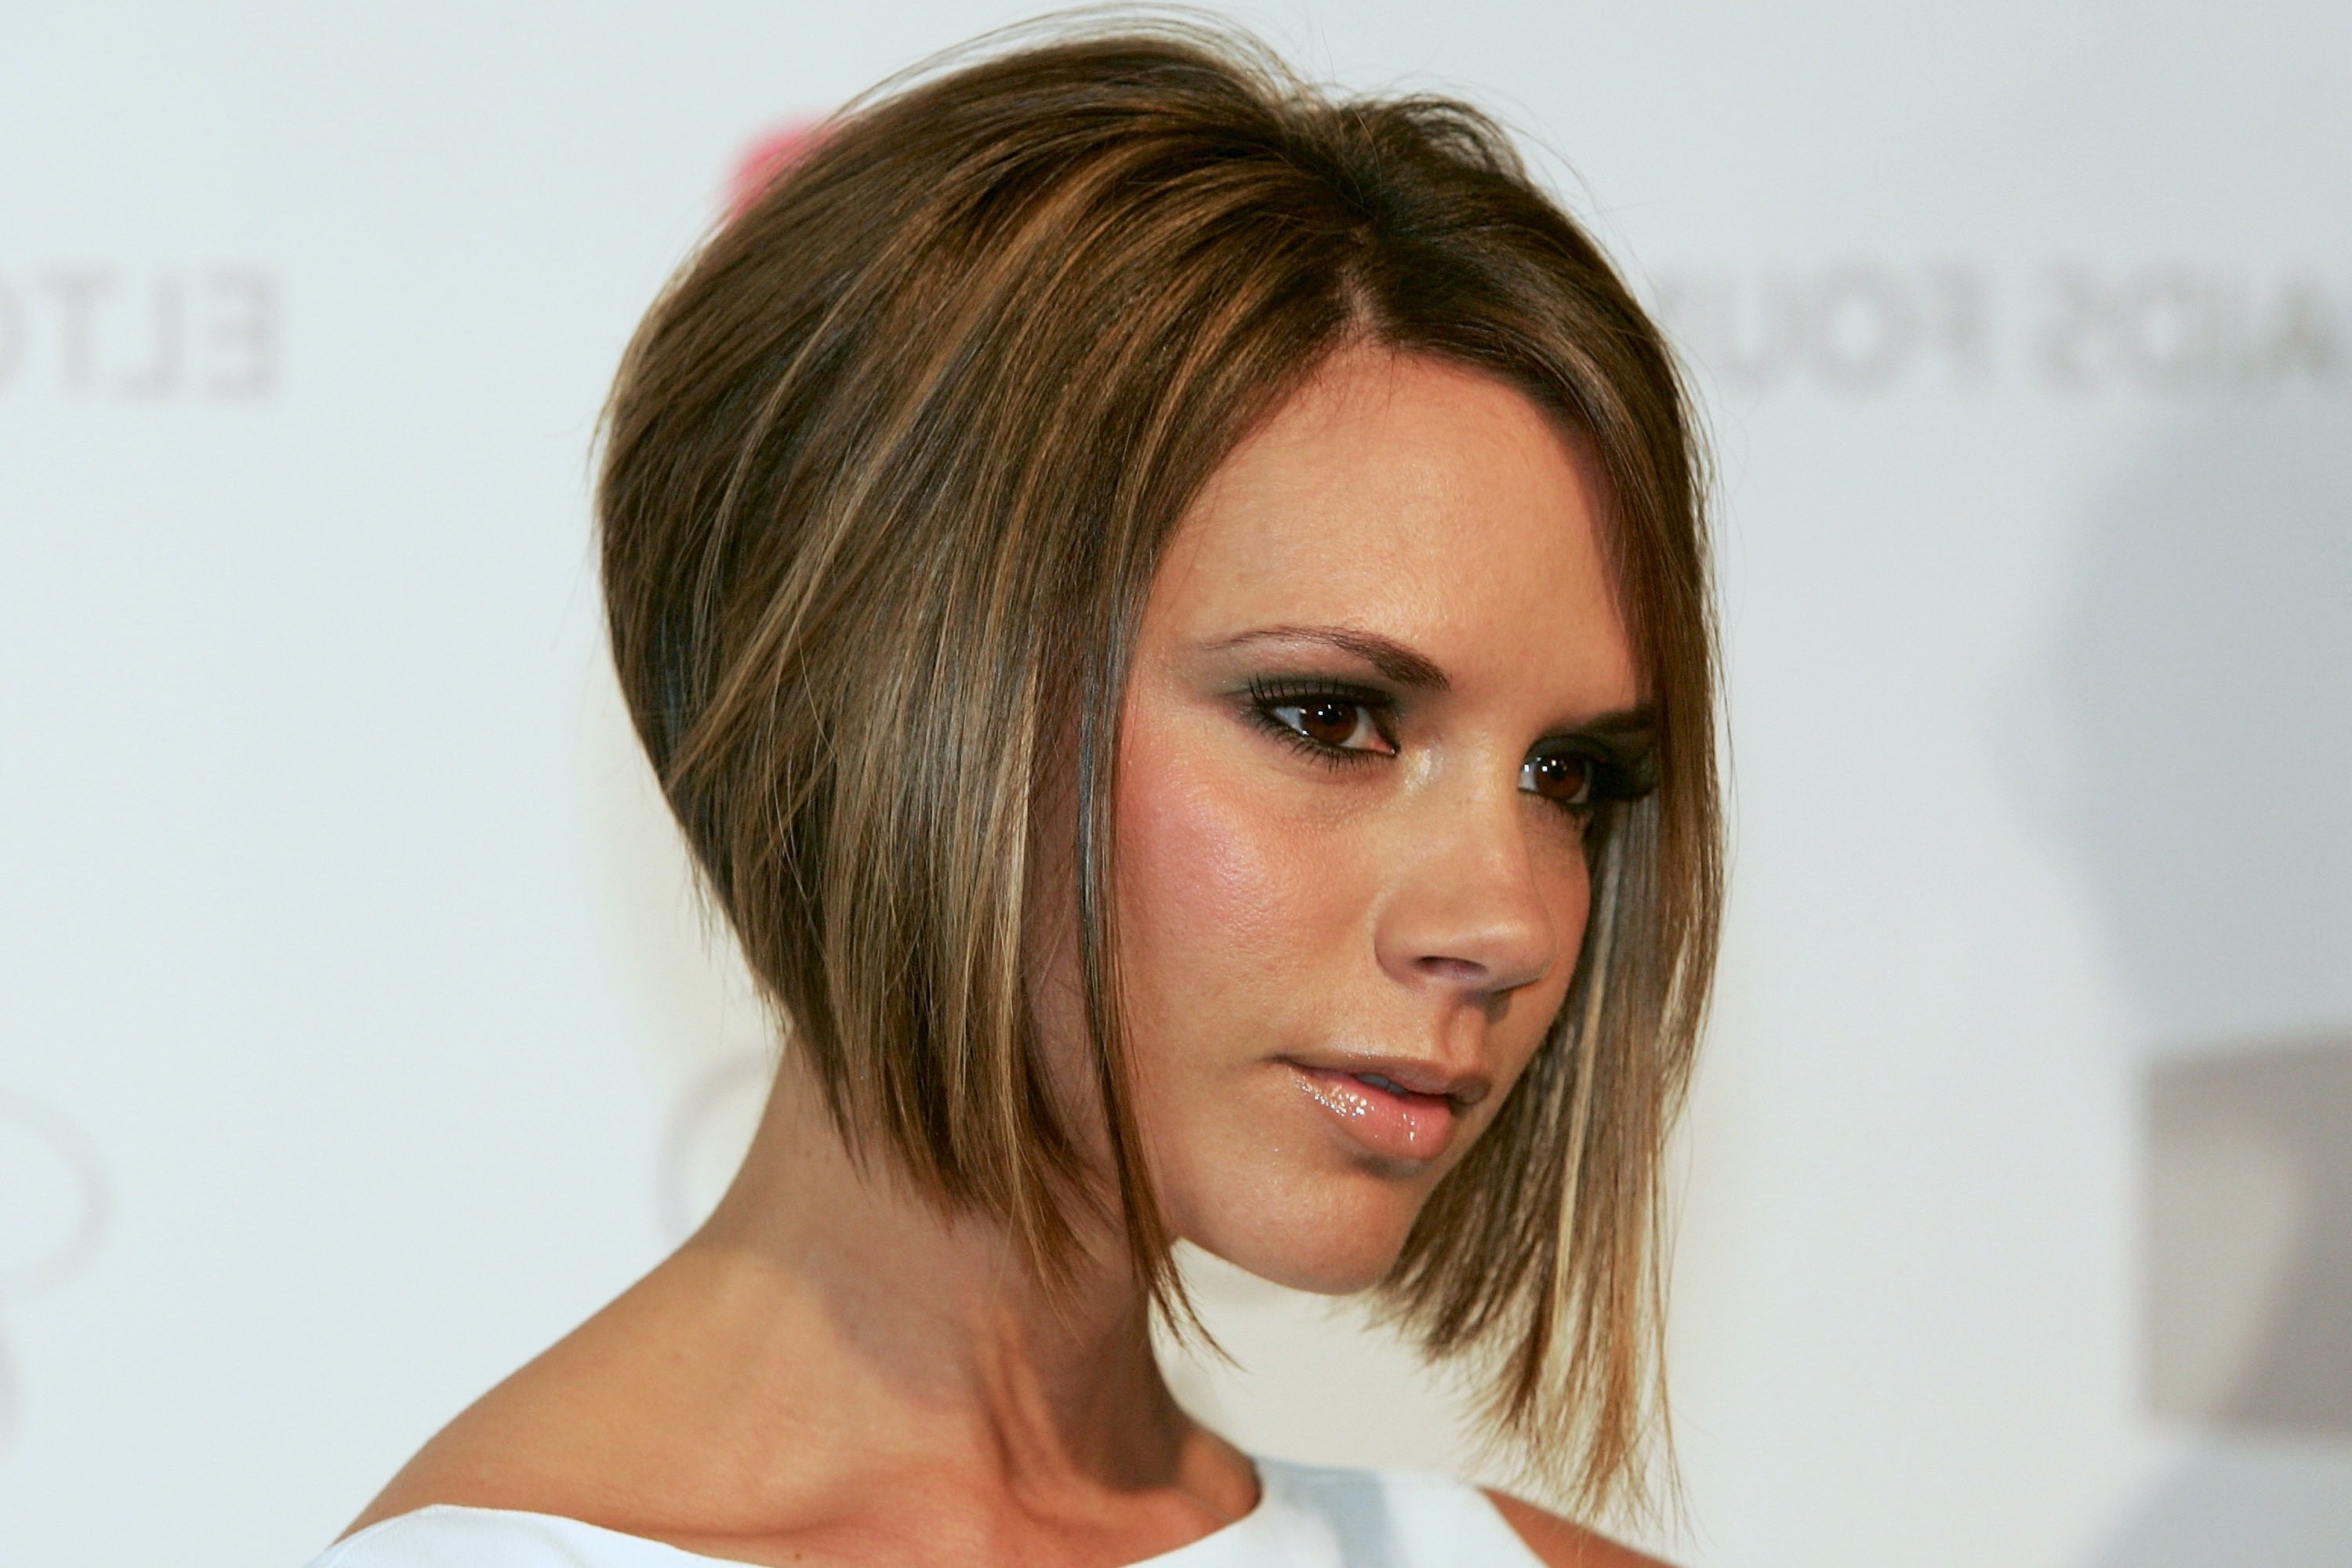 Victoria Beckham's Daughter, Harper, Got Her Mother's Famous Bob Pertaining To Victoria Beckham Short Haircuts (View 25 of 25)